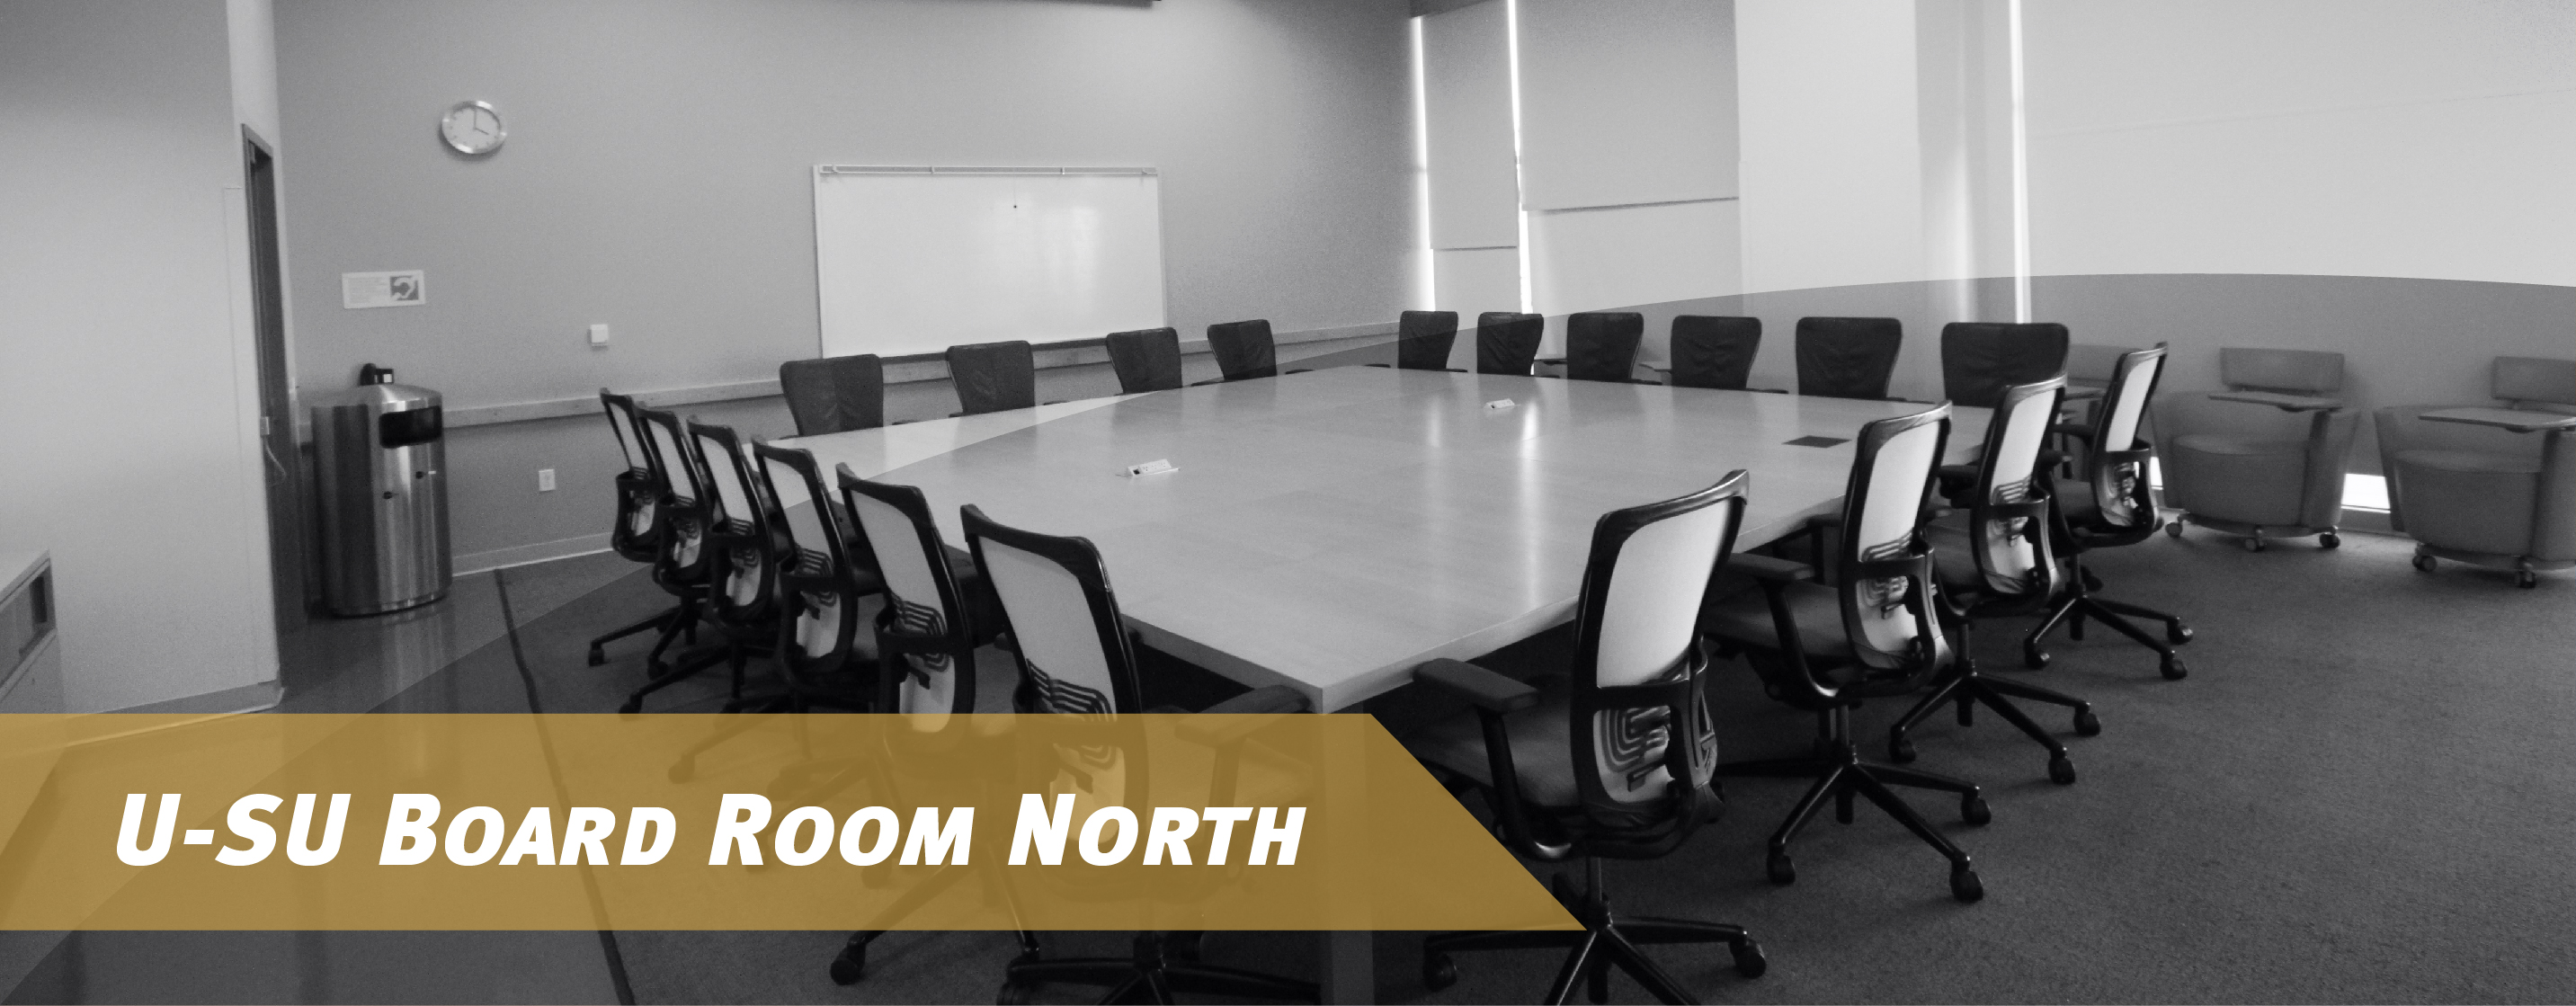 Board Room North